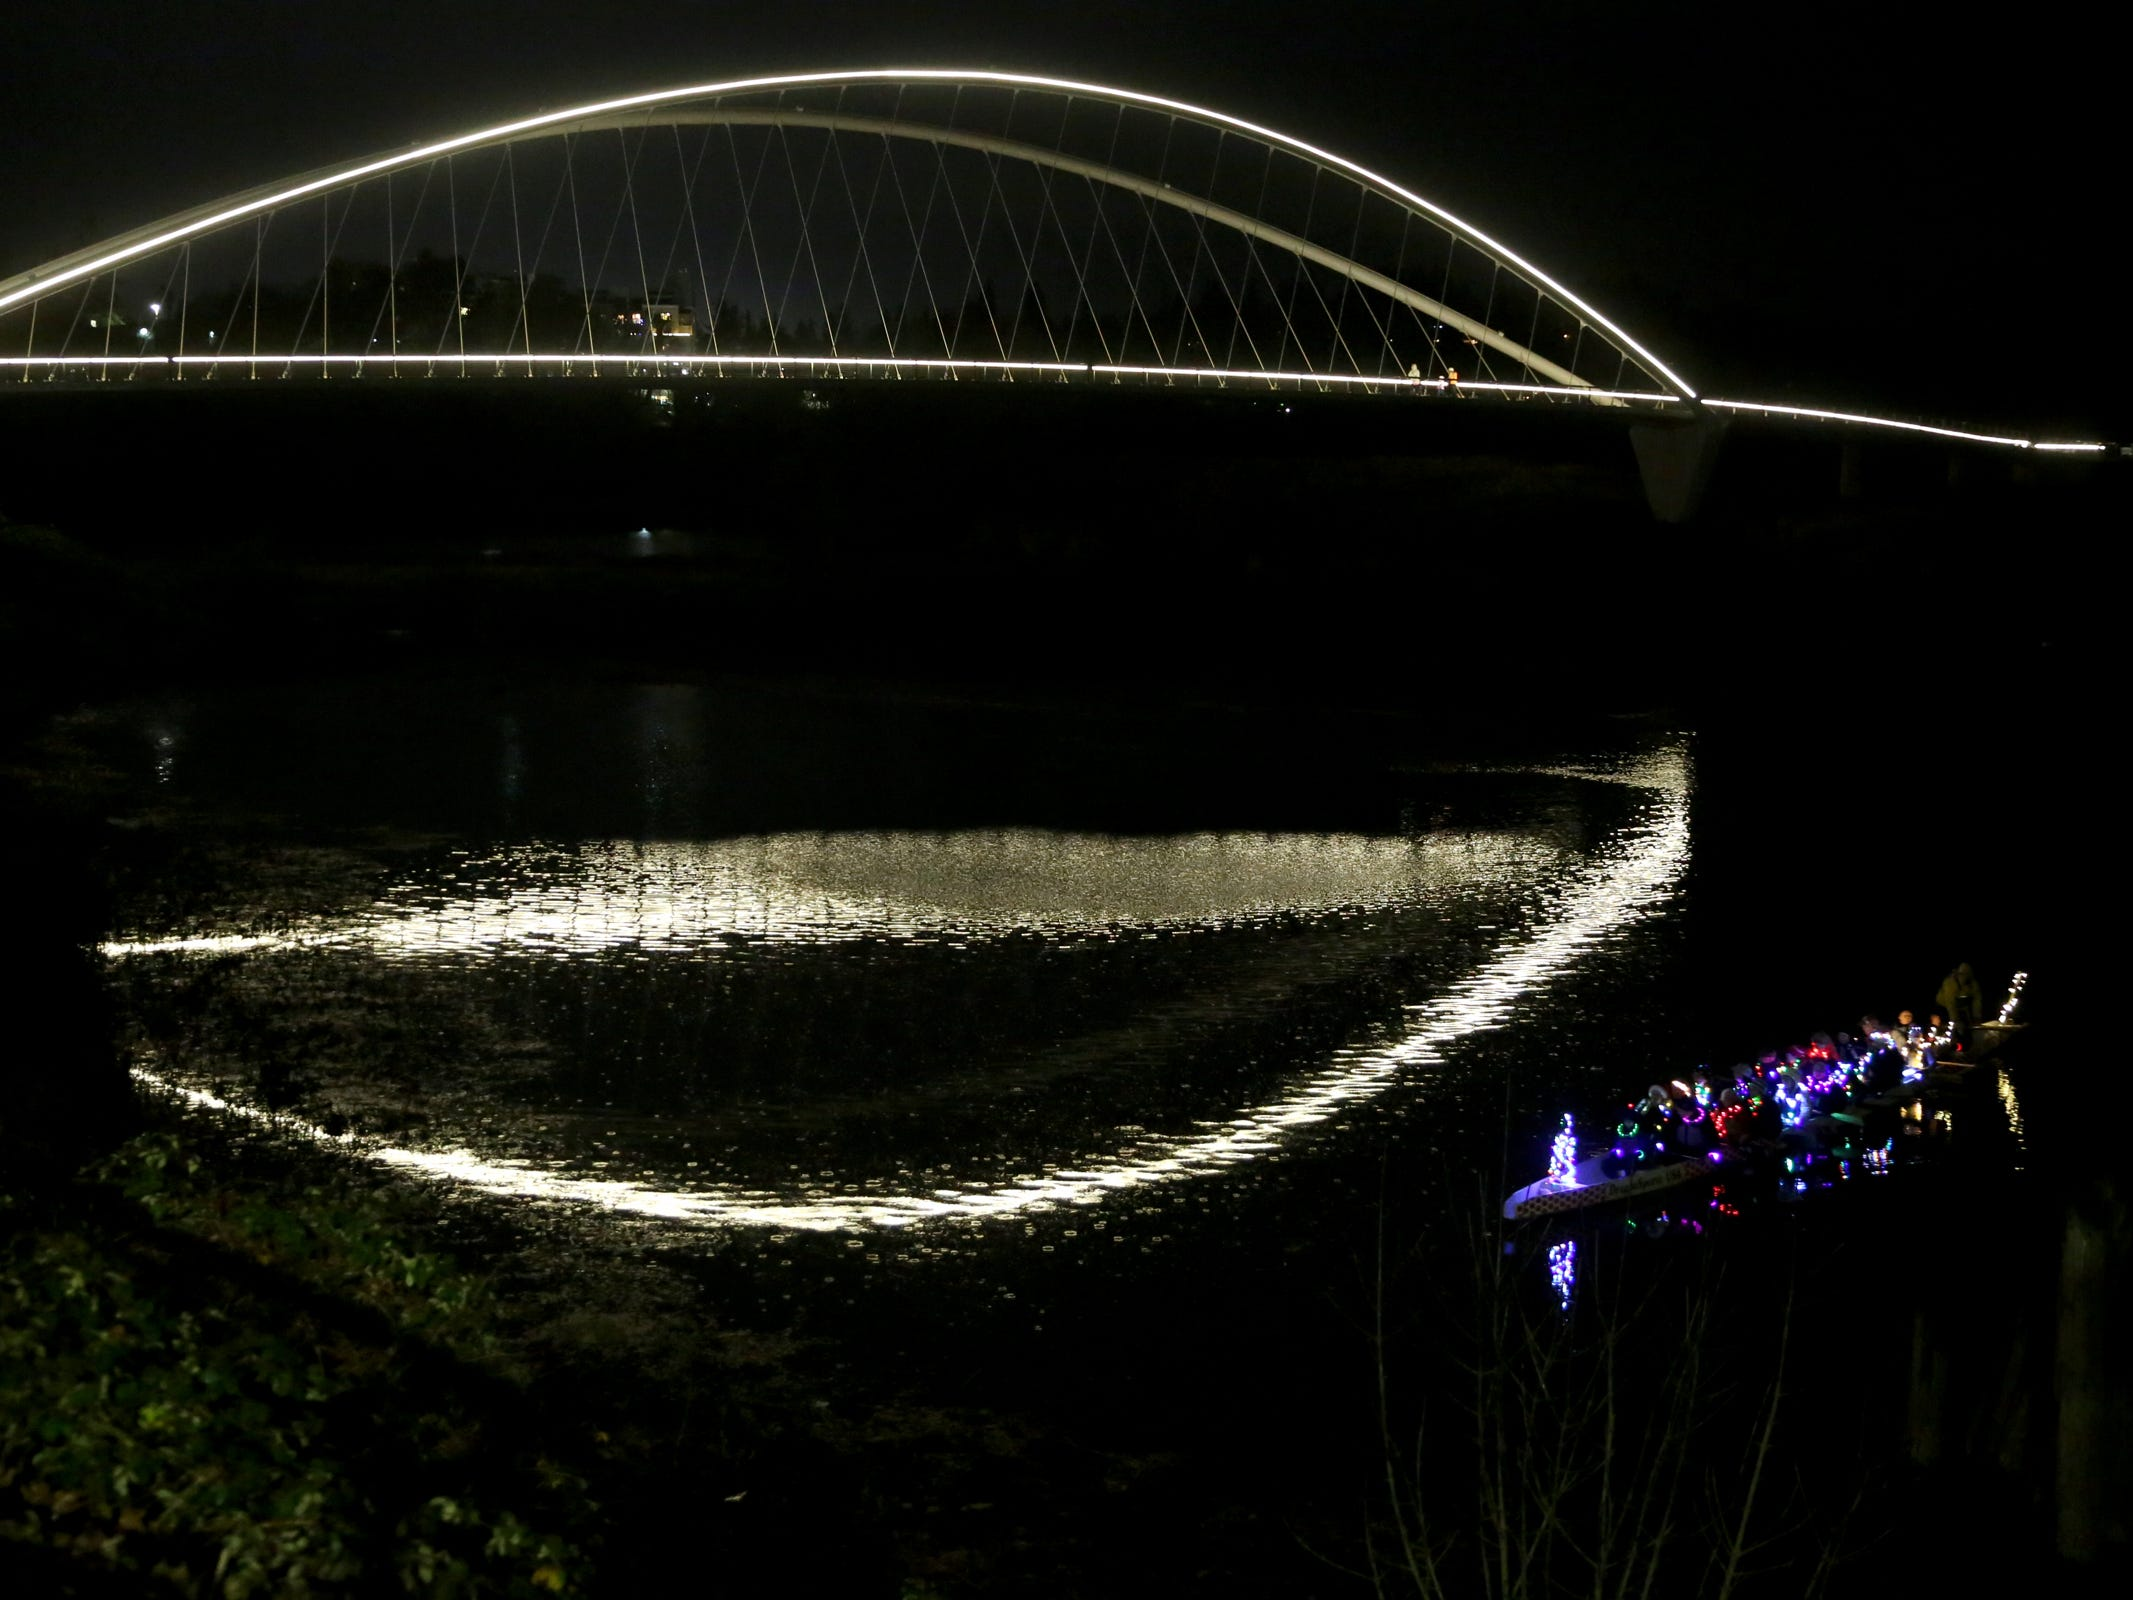 A dragon boat floats near the Peter Courtney Pedestrian Bridge during the 14th annual Winter Solstice Illuminata Regatta on the Willamette River at Riverfront Park in Salem on Saturday, Dec. 15, 2018.